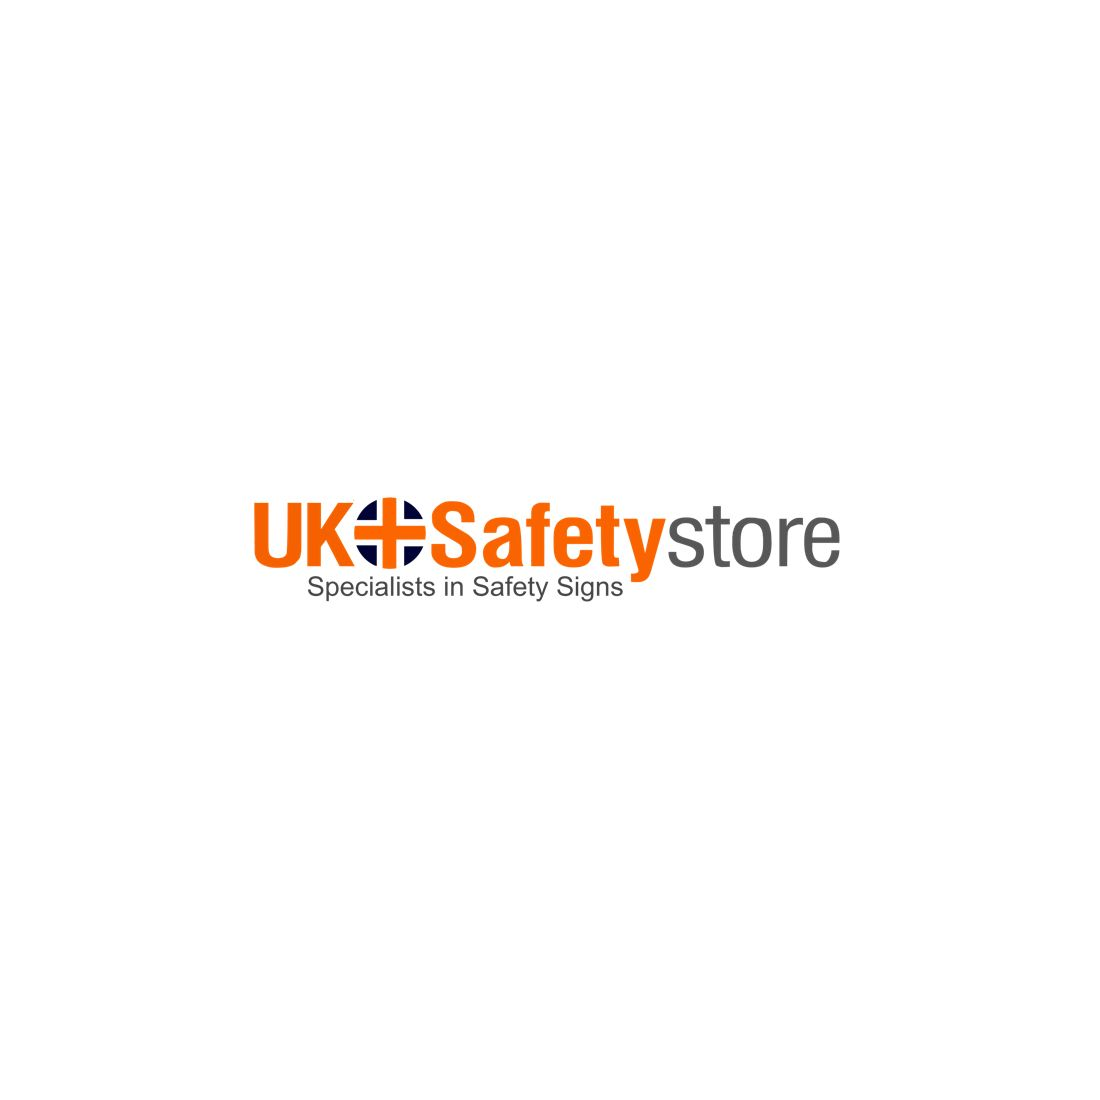 All Contractors And Visitors Must Report To The Site Office For A Safety Induction 600W X 1200Hmm Aluminium Composite Sign with Your Logo